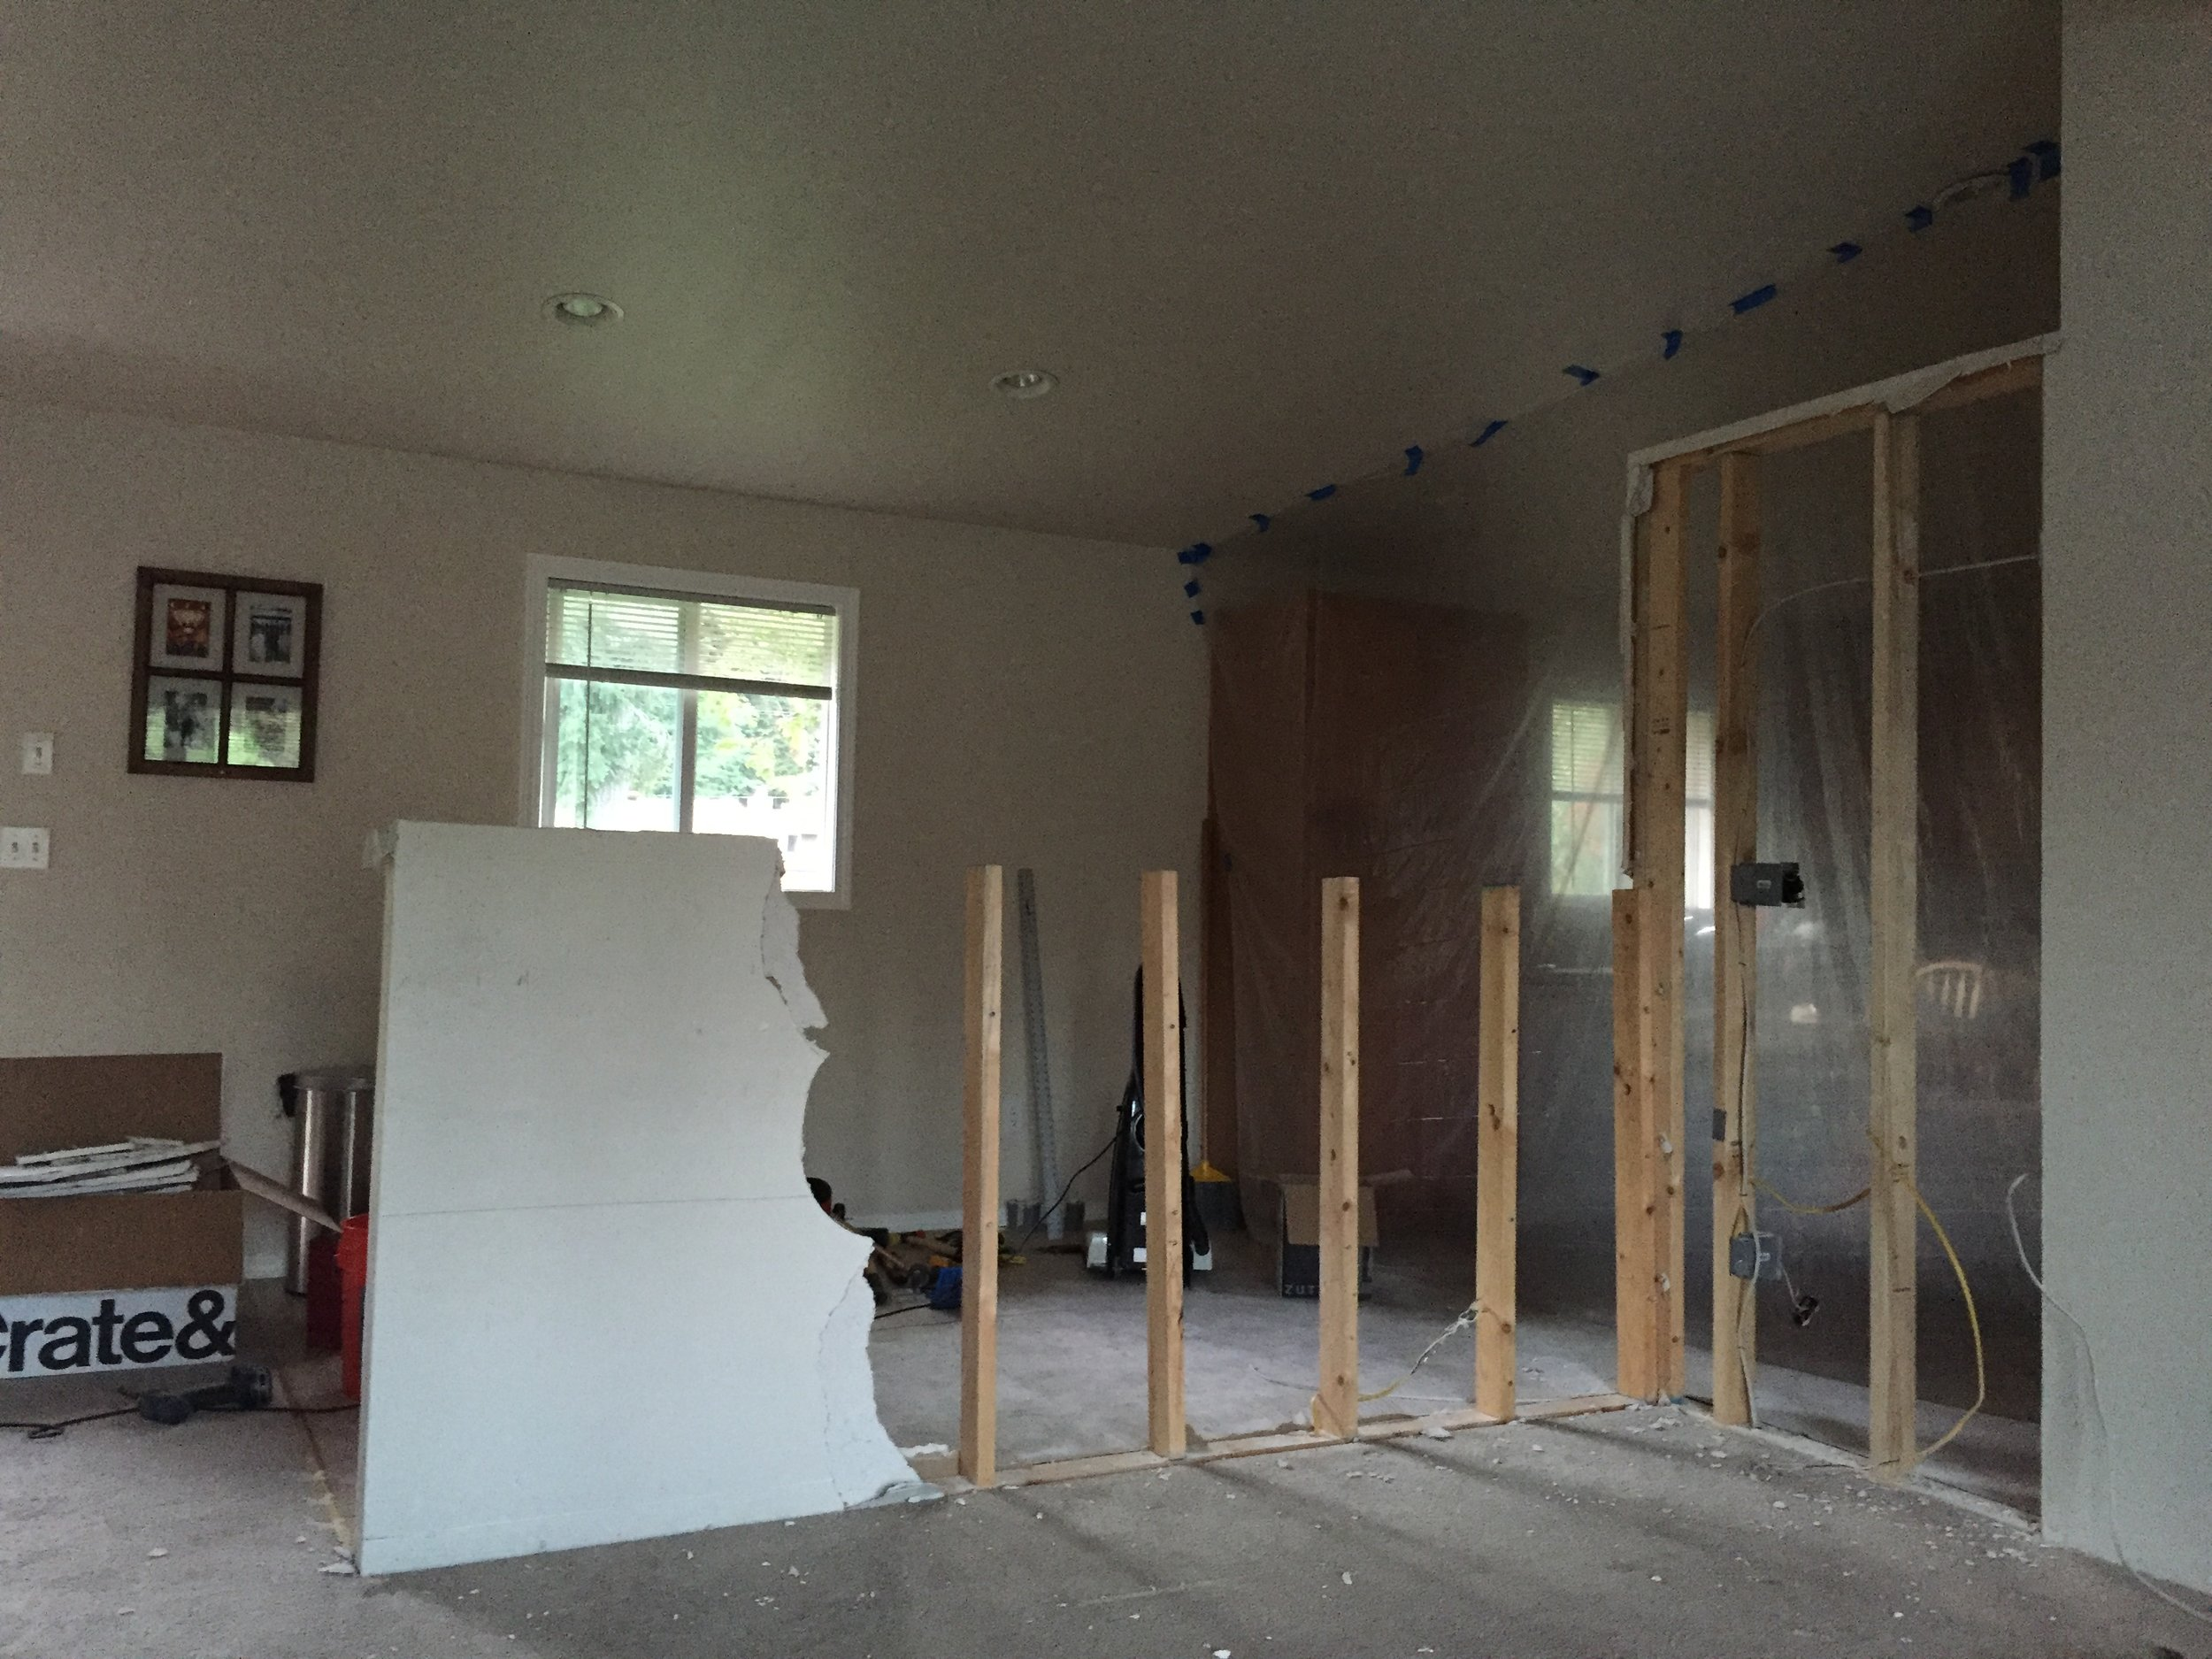 Getting our first glimpse of what it would look like without the wall!